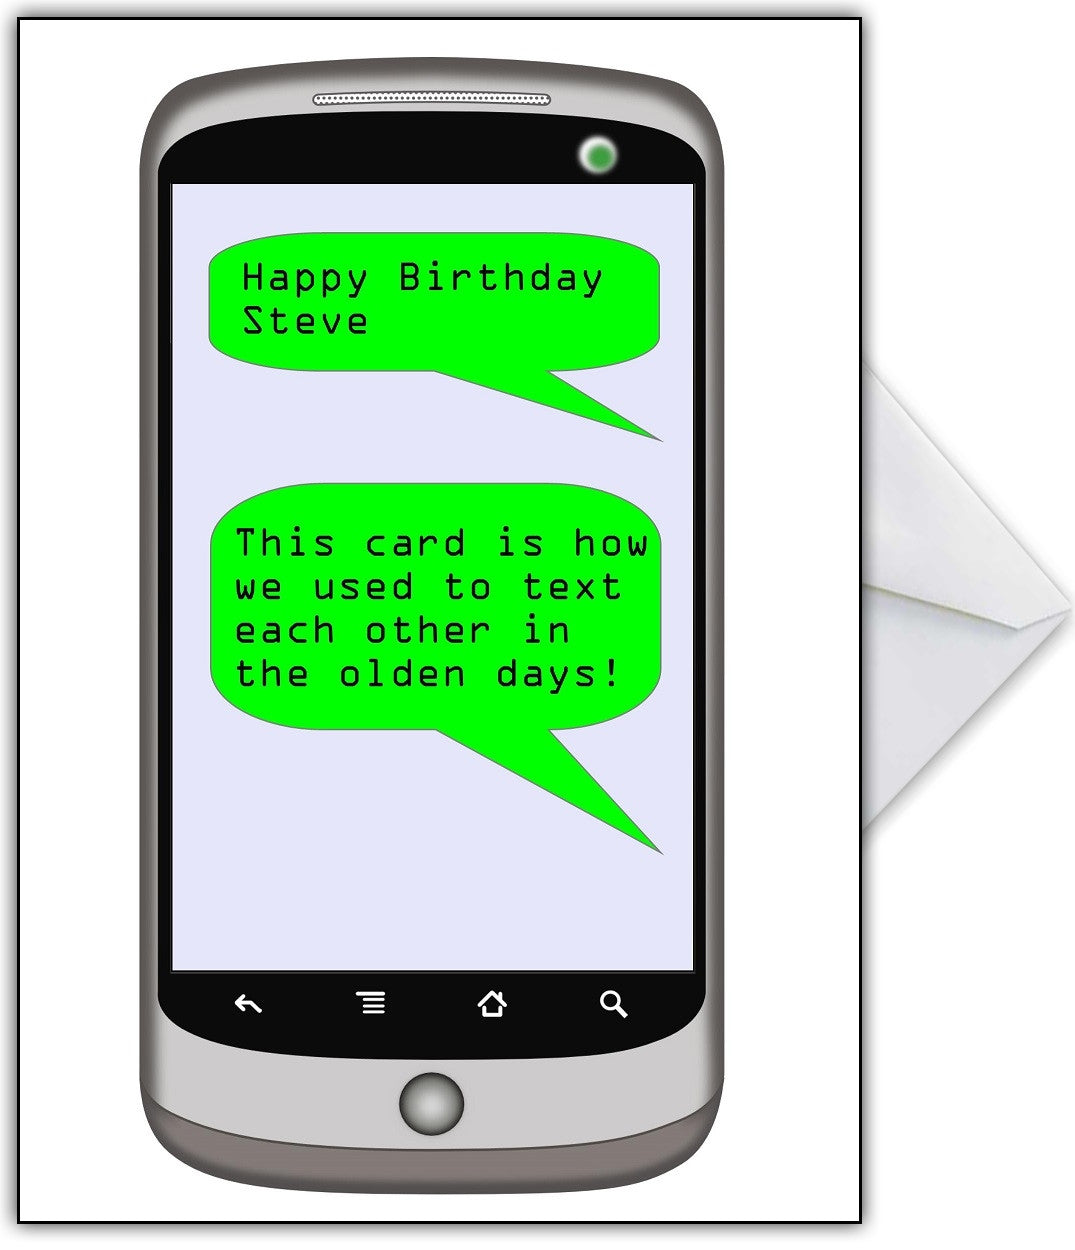 Funny Birthday Card This Is The Old Fashioned Way Of Texting